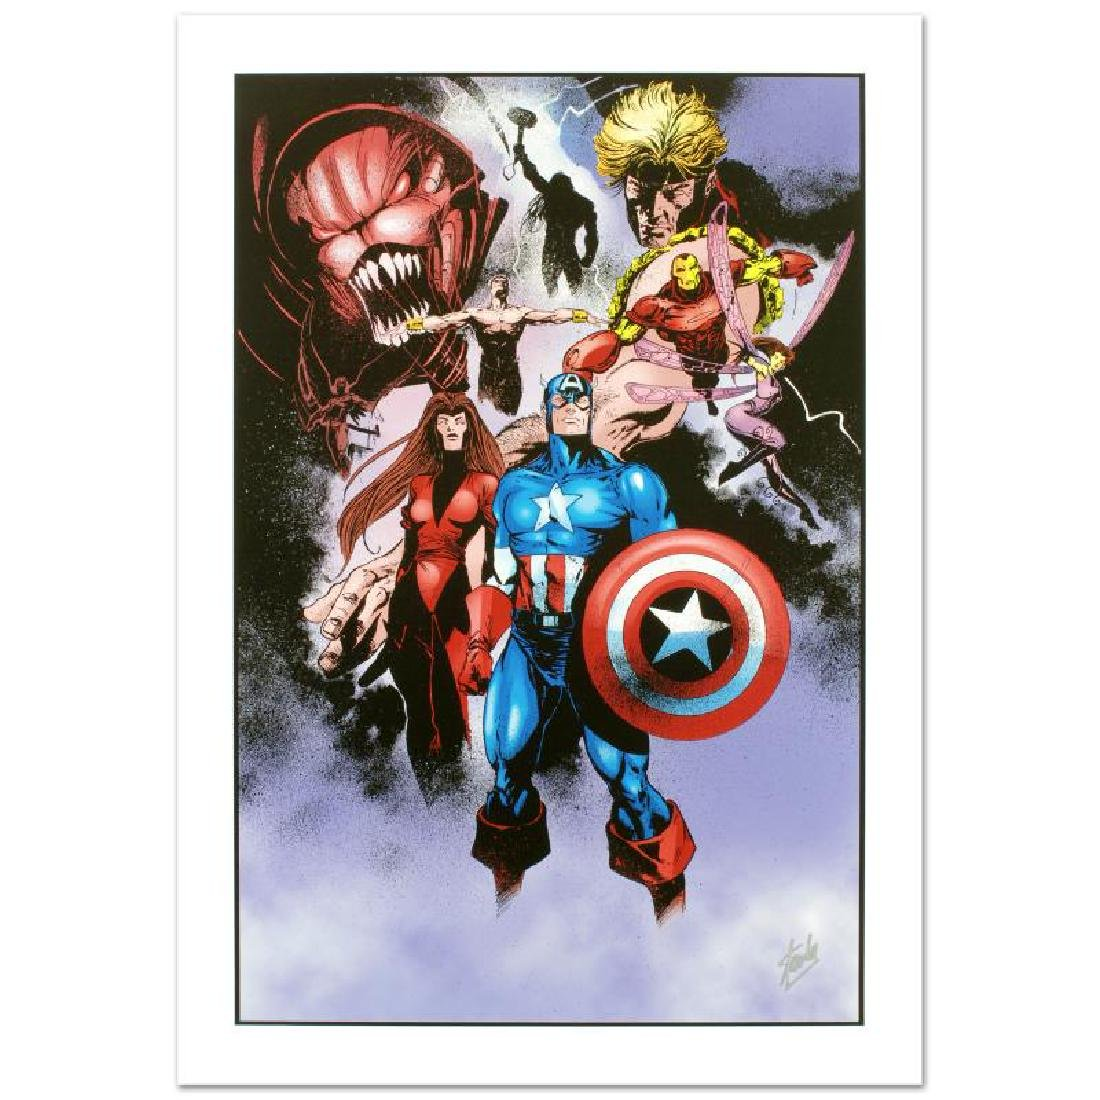 Avengers #99 Annual by Stan Lee - Marvel Comics